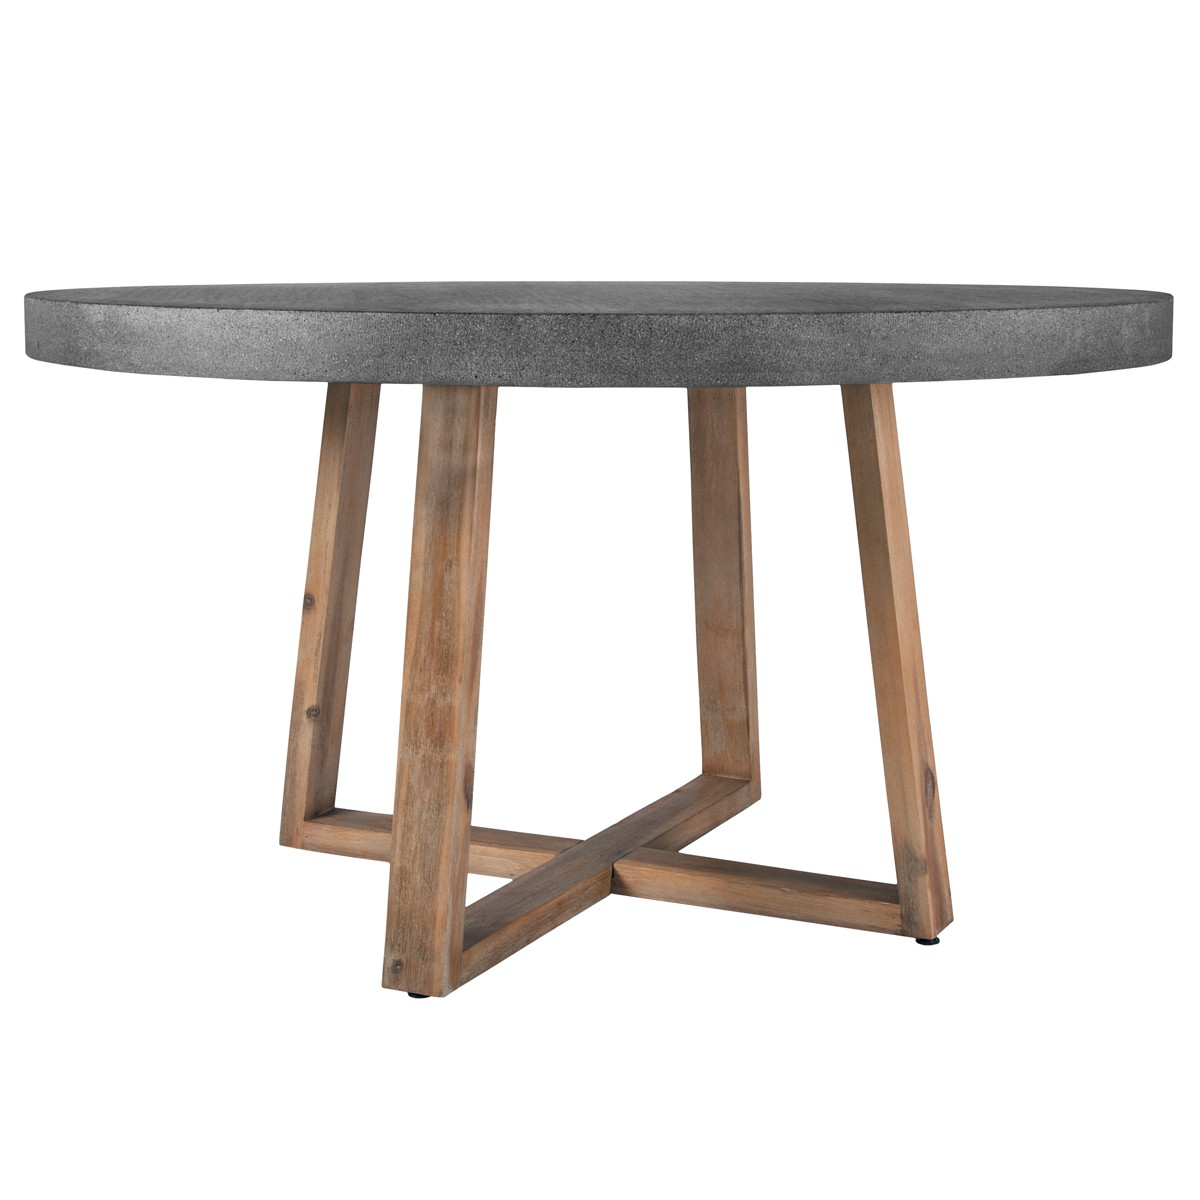 Table ronde r sine et bois 140 cm koya design for Table design ronde